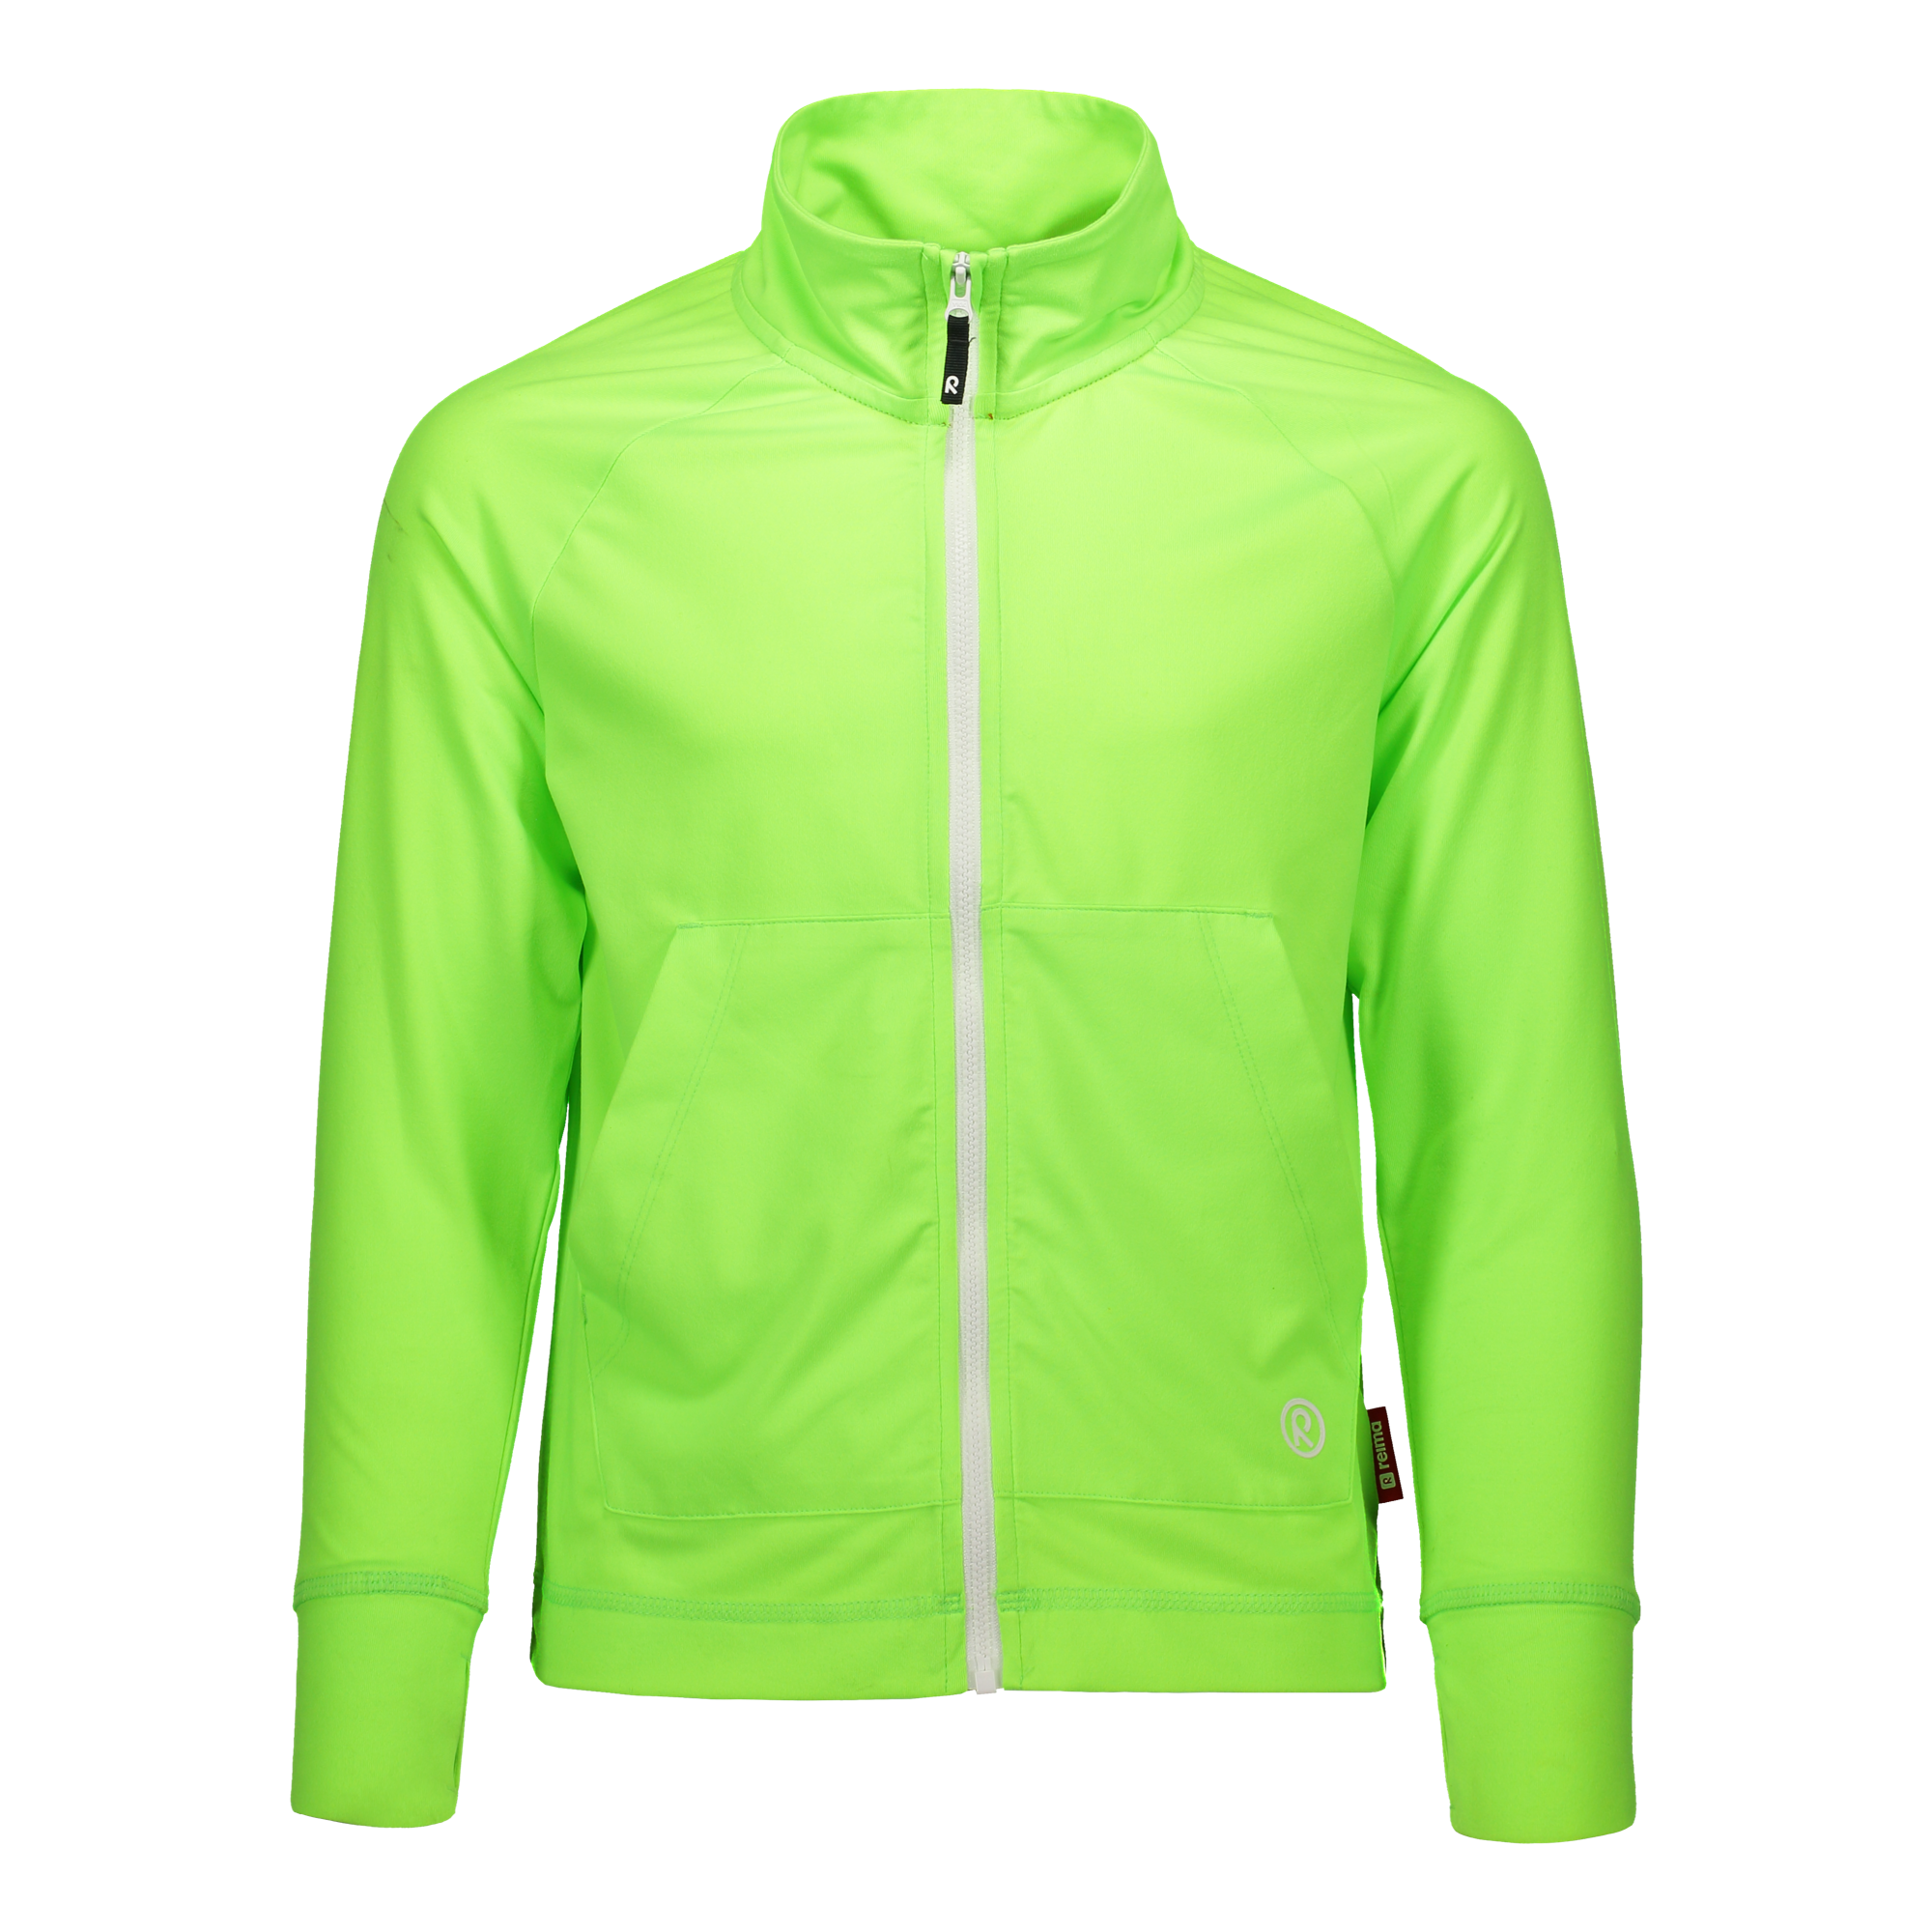 Brygge_Xylitol_Cool_536353-Front_SMS